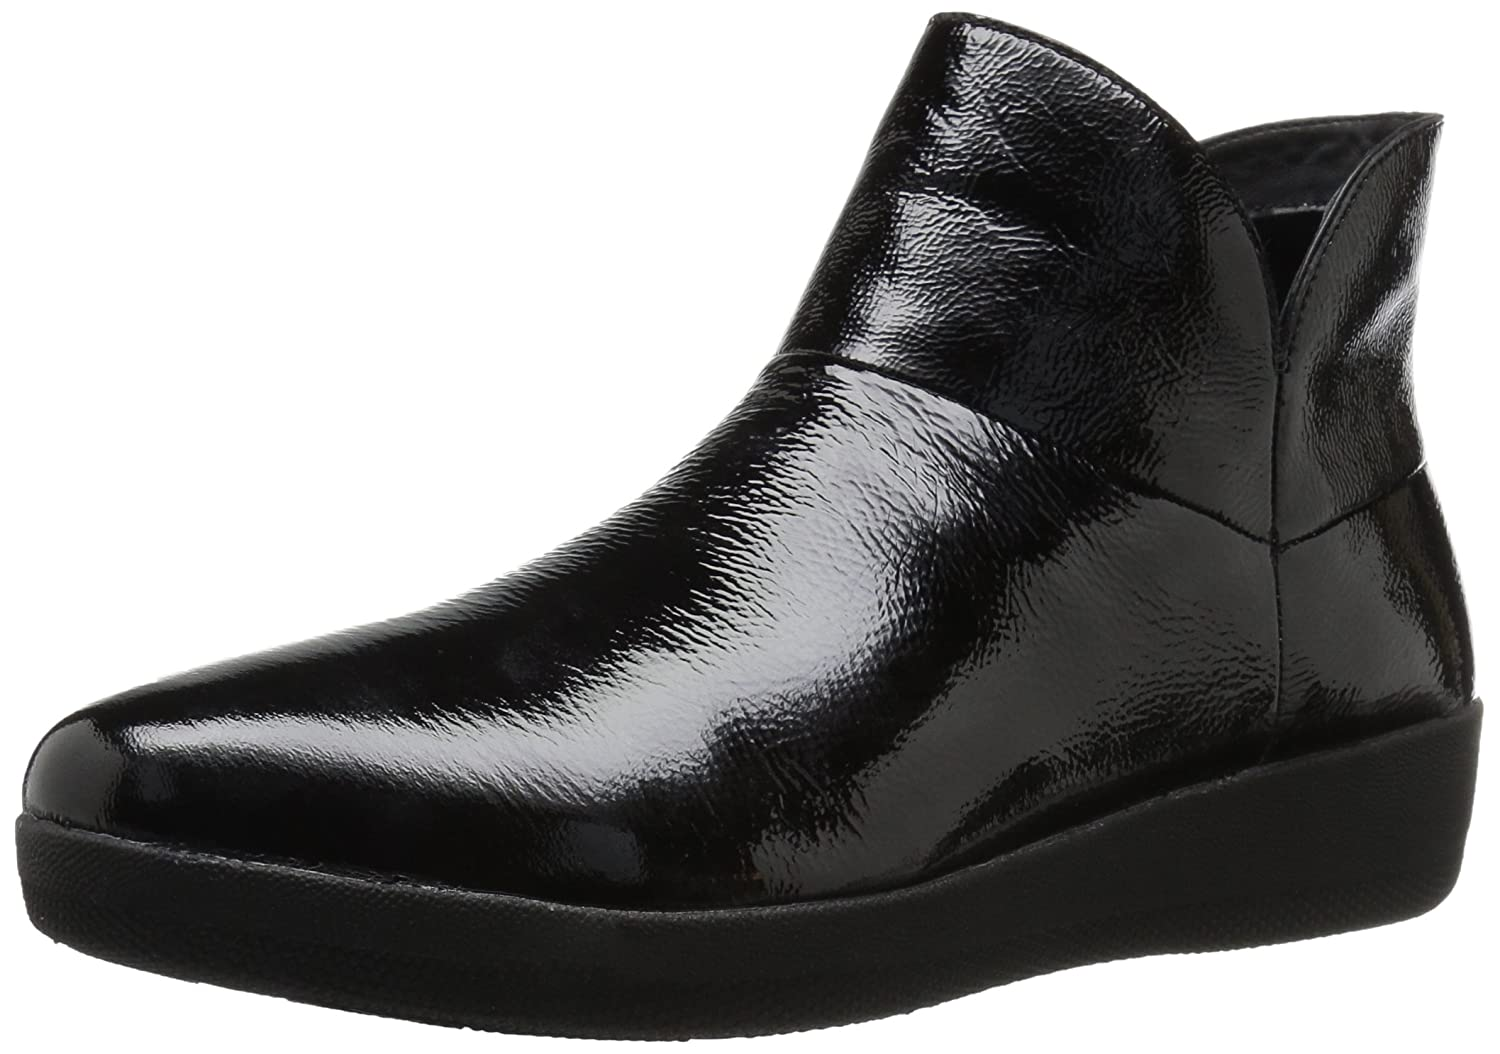 FitFlop Women's Supermod Boot Ankle Bootie B01IC22HE4 7.5 B(M) US|Black Patent